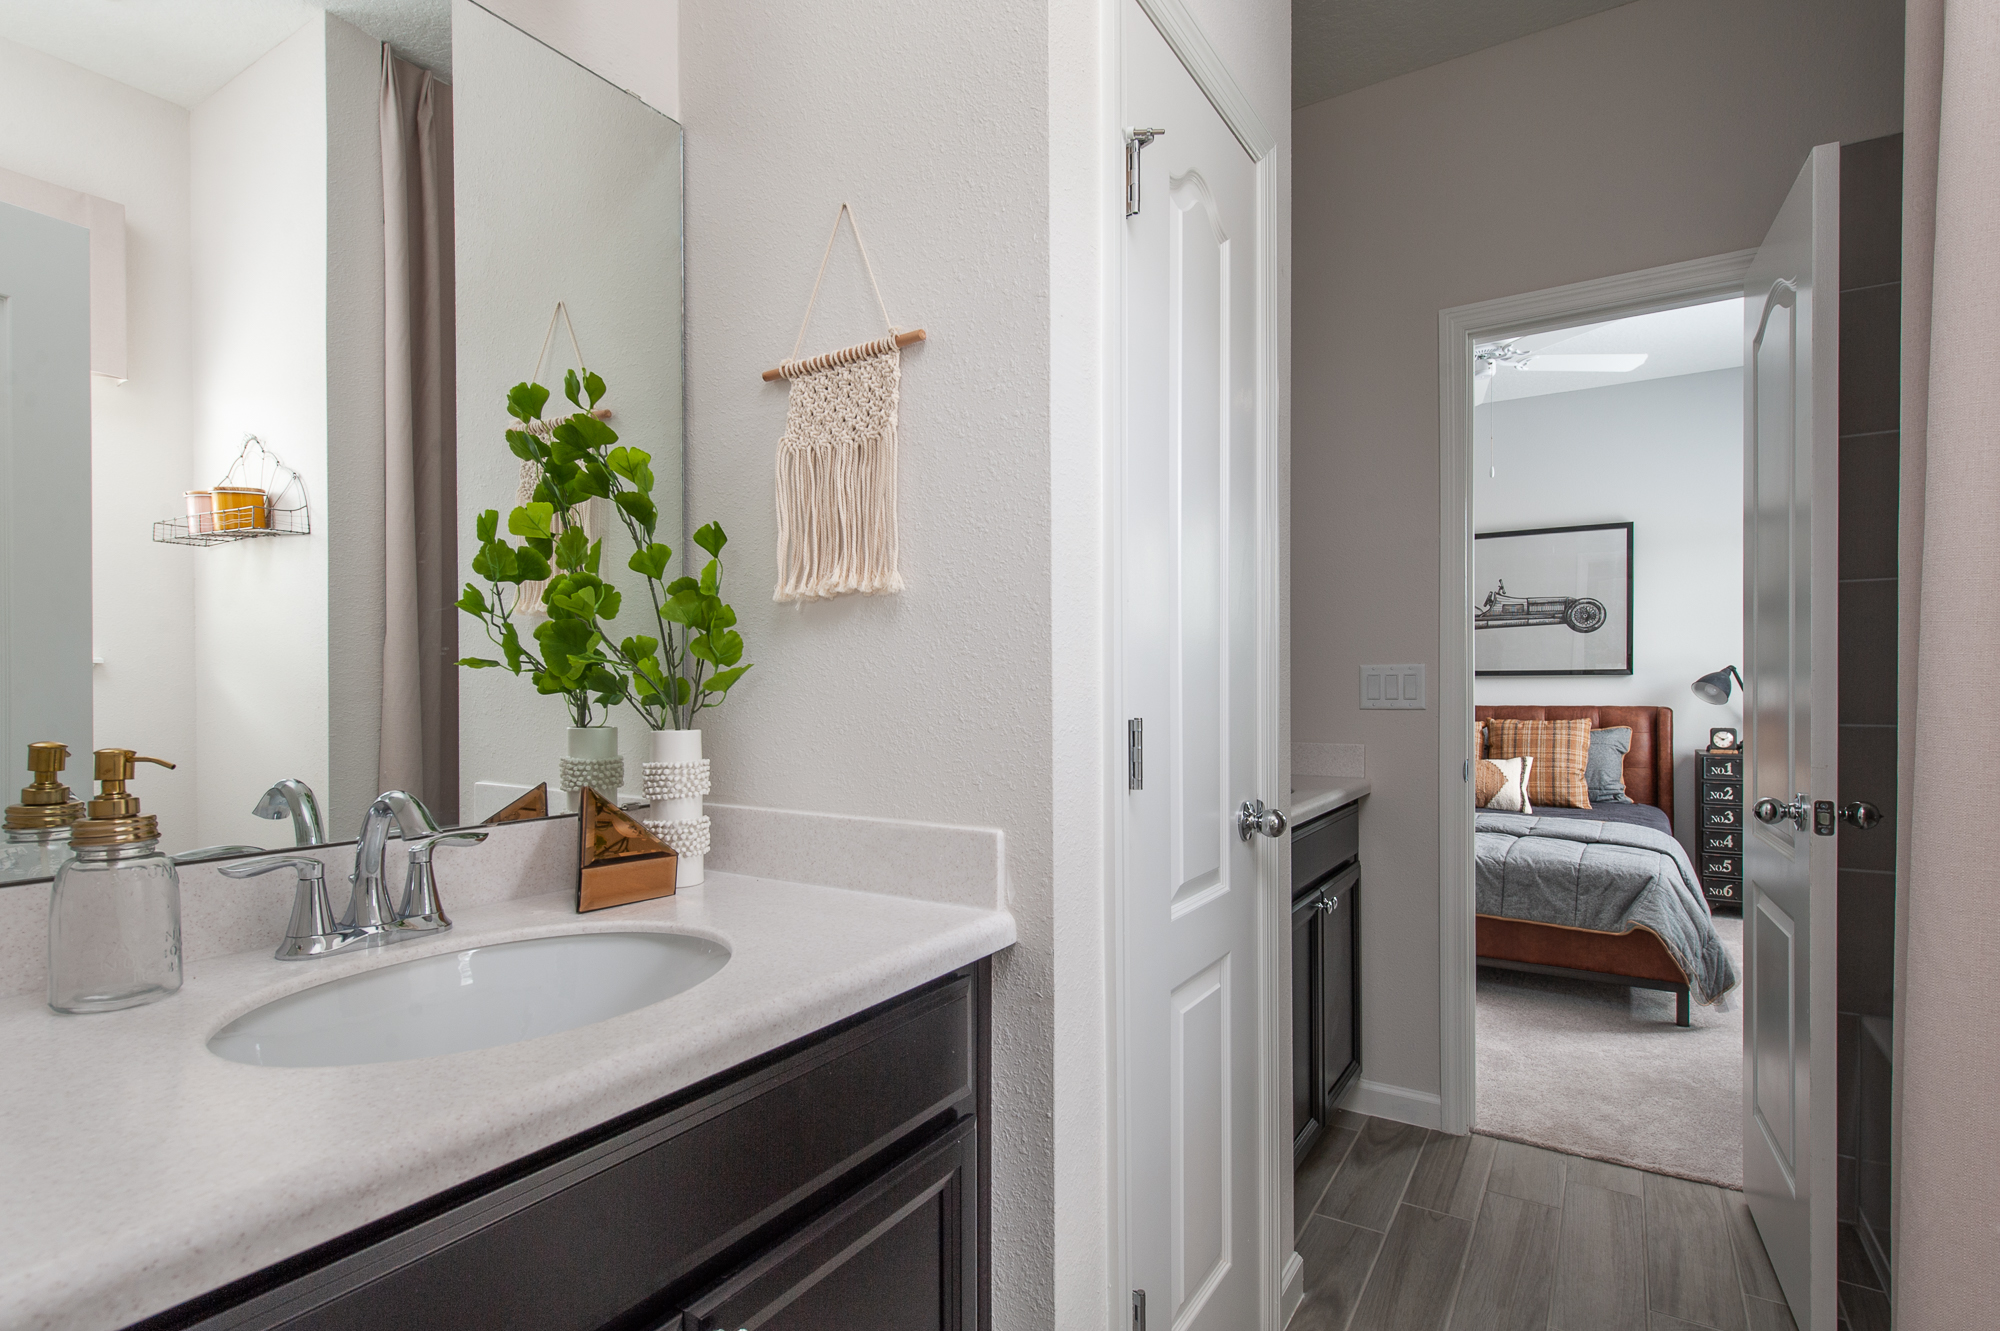 Micamy Design Studio_Model Home_Interior Design_Orchard Cove_Modern Coastal_Jack and Jill Bath_Girls Room_Boys Room.jpg